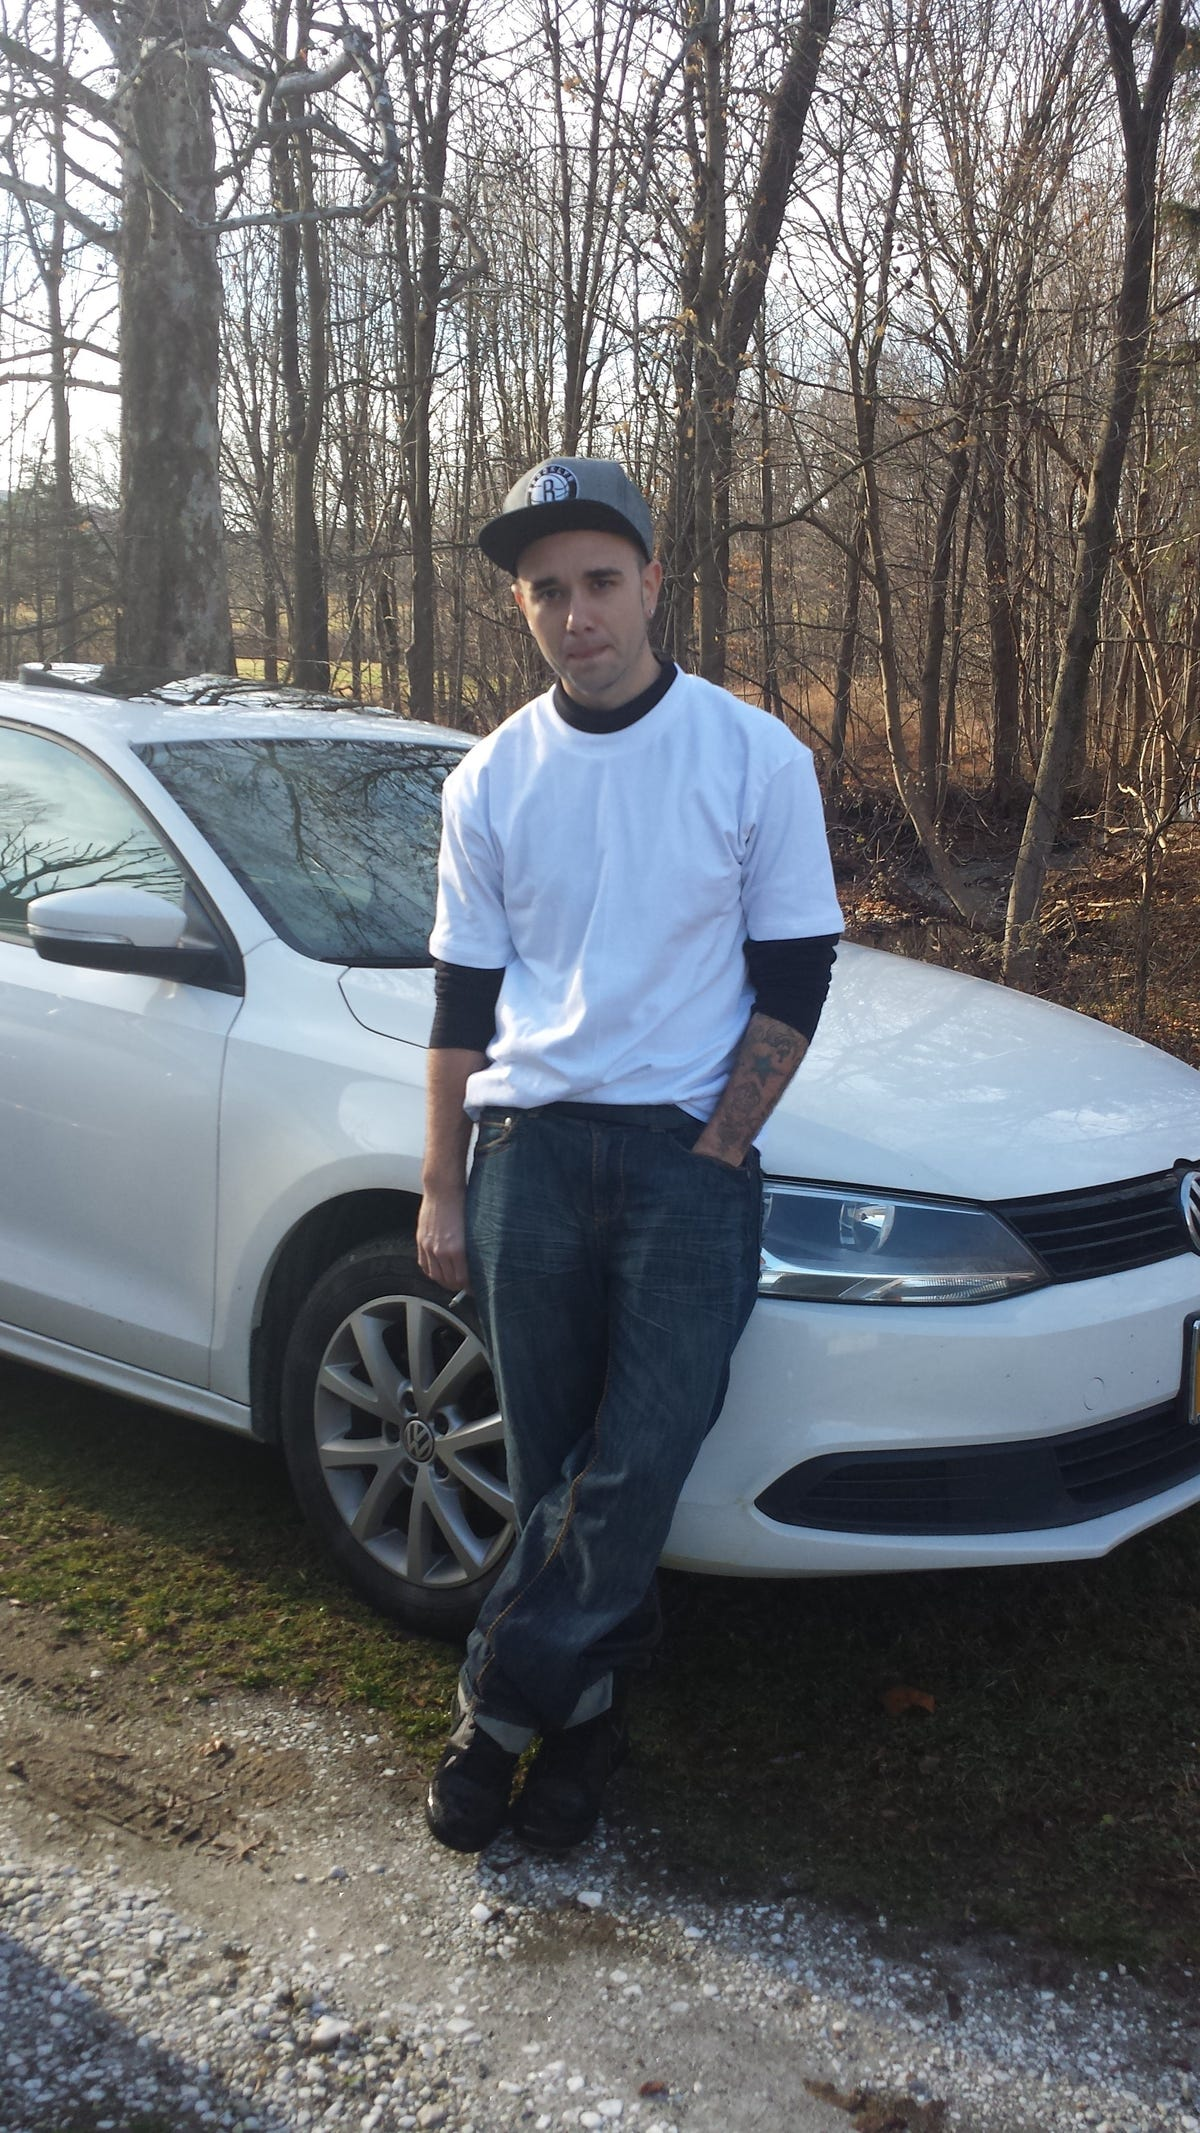 Dover man in fatal crash was faring 'better in life' than ever